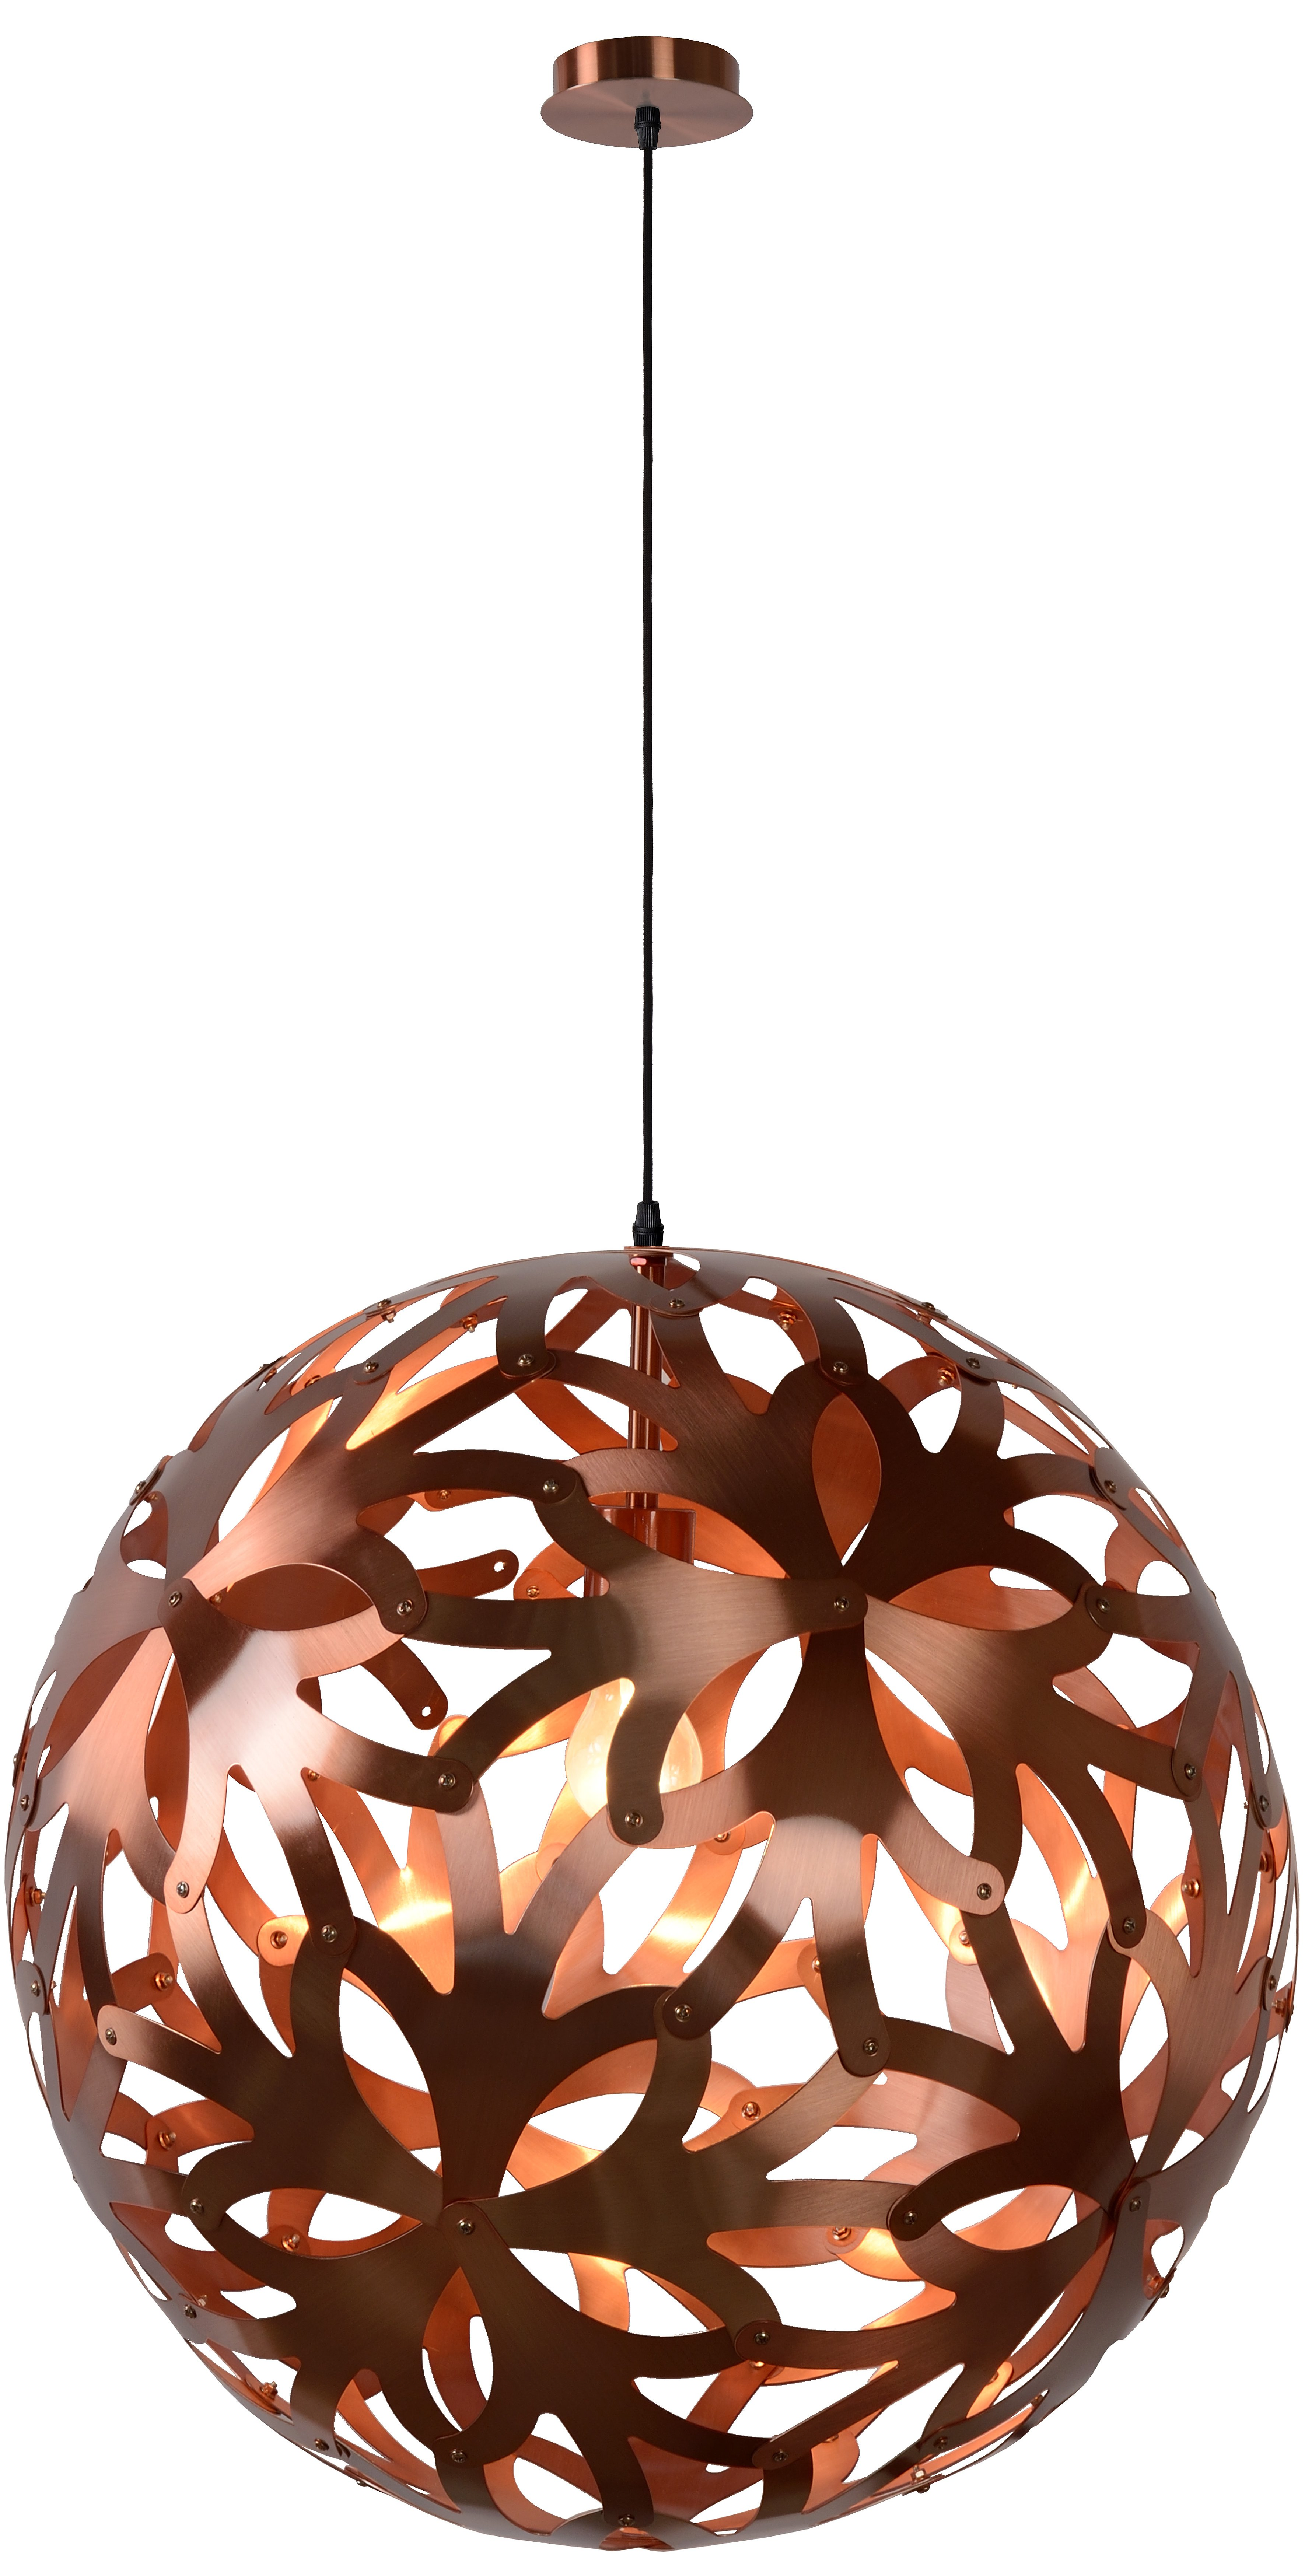 Lucide Keith hanglamp